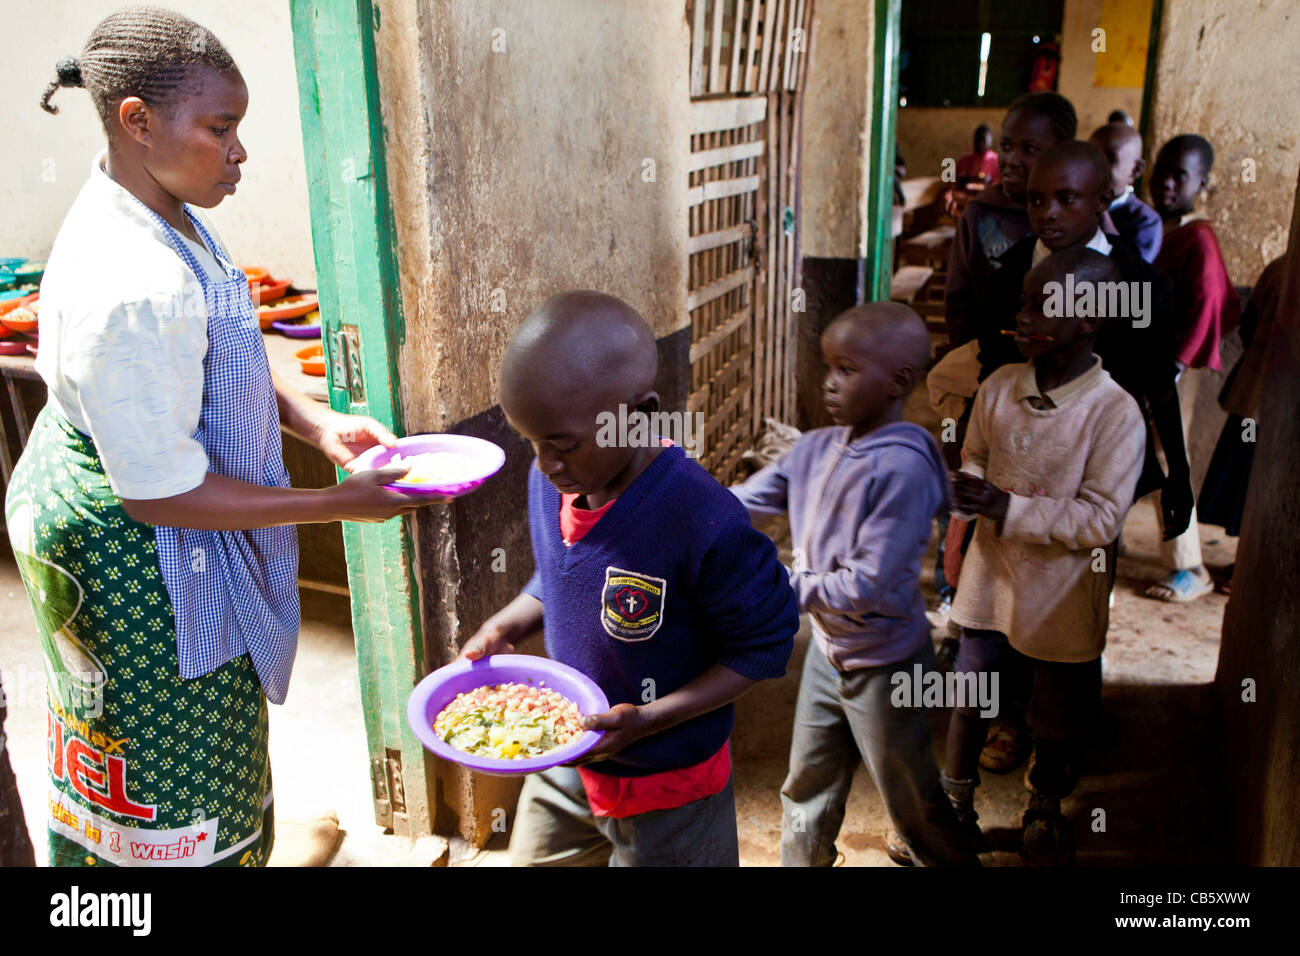 School children receive freshly cooked food at Kibera School, Nairobi where an NGO runs a lunchtime feeding program. - Stock Image